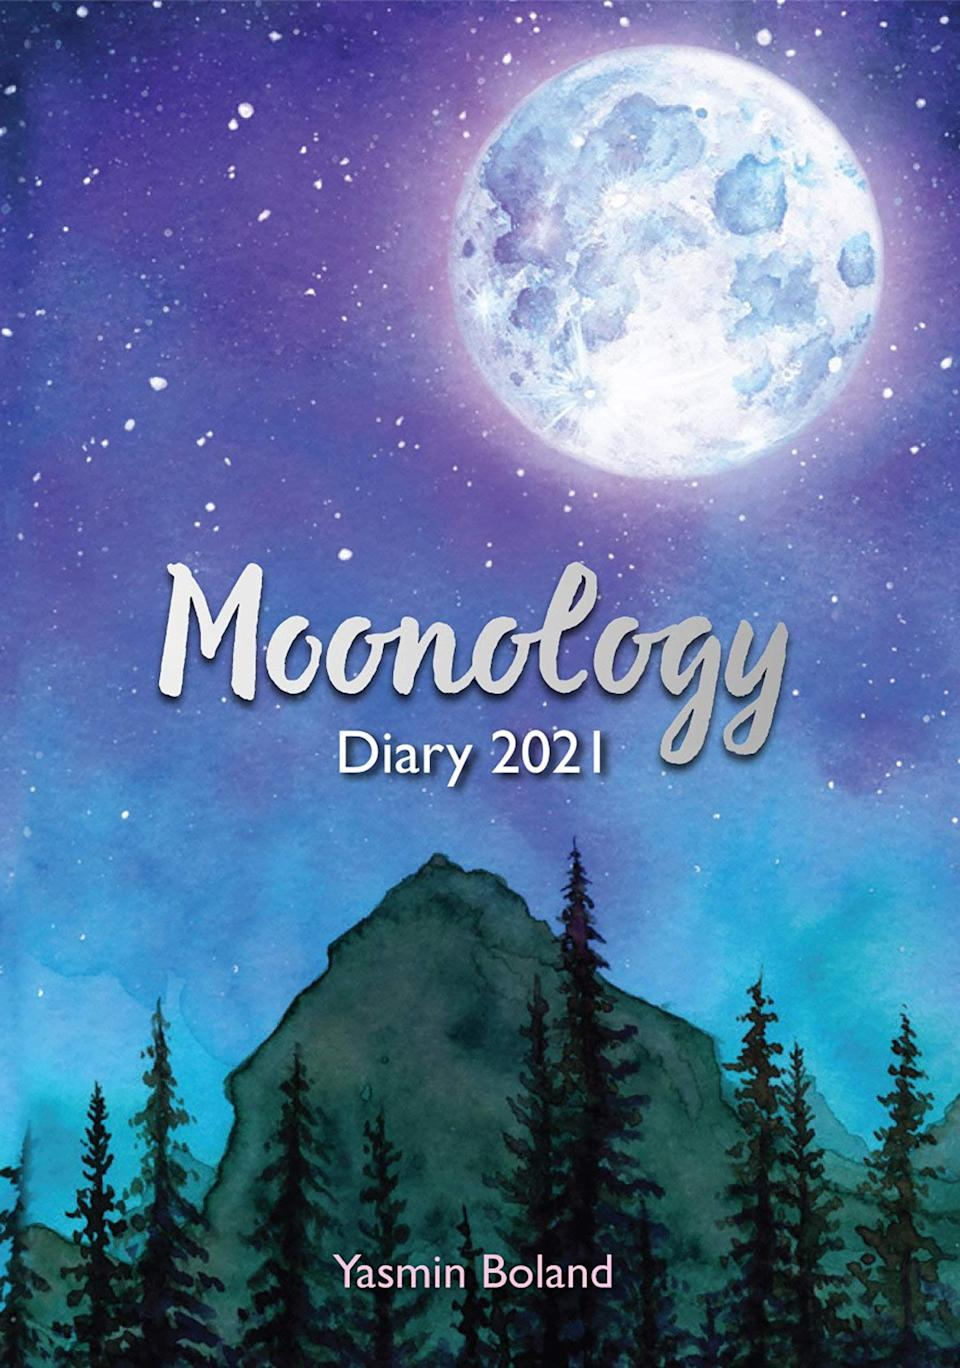 Moonology Diary 2021 (Photo via Happy Soul)